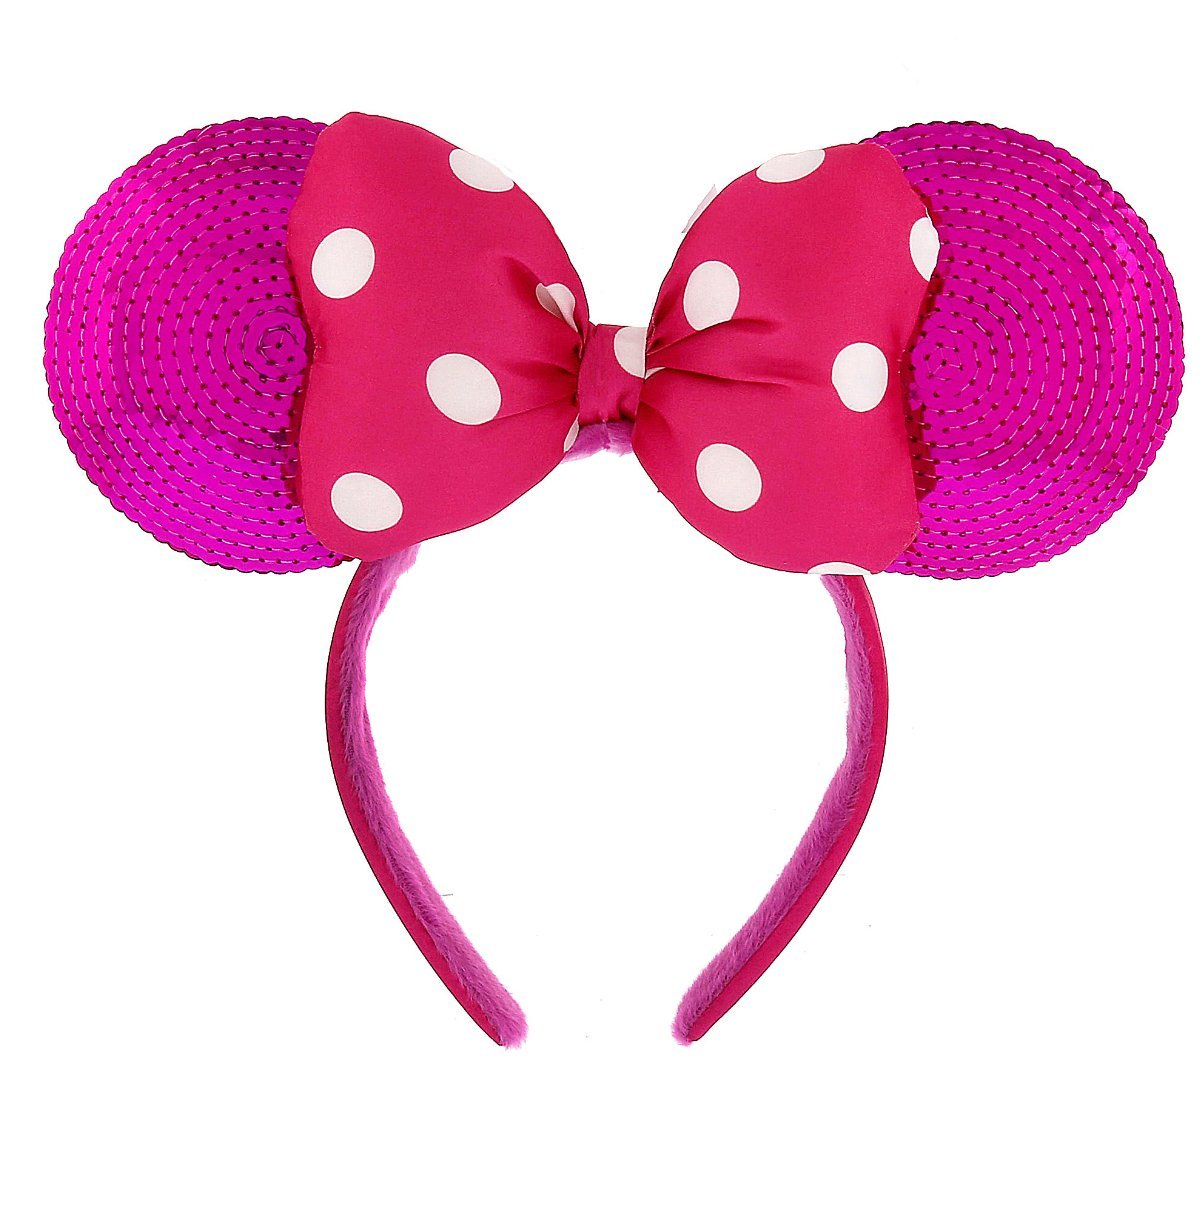 Buy Disney Theme Parks Minnie Mouse Sequin Headband Pink Ears in ... 06fd3895ef6a5